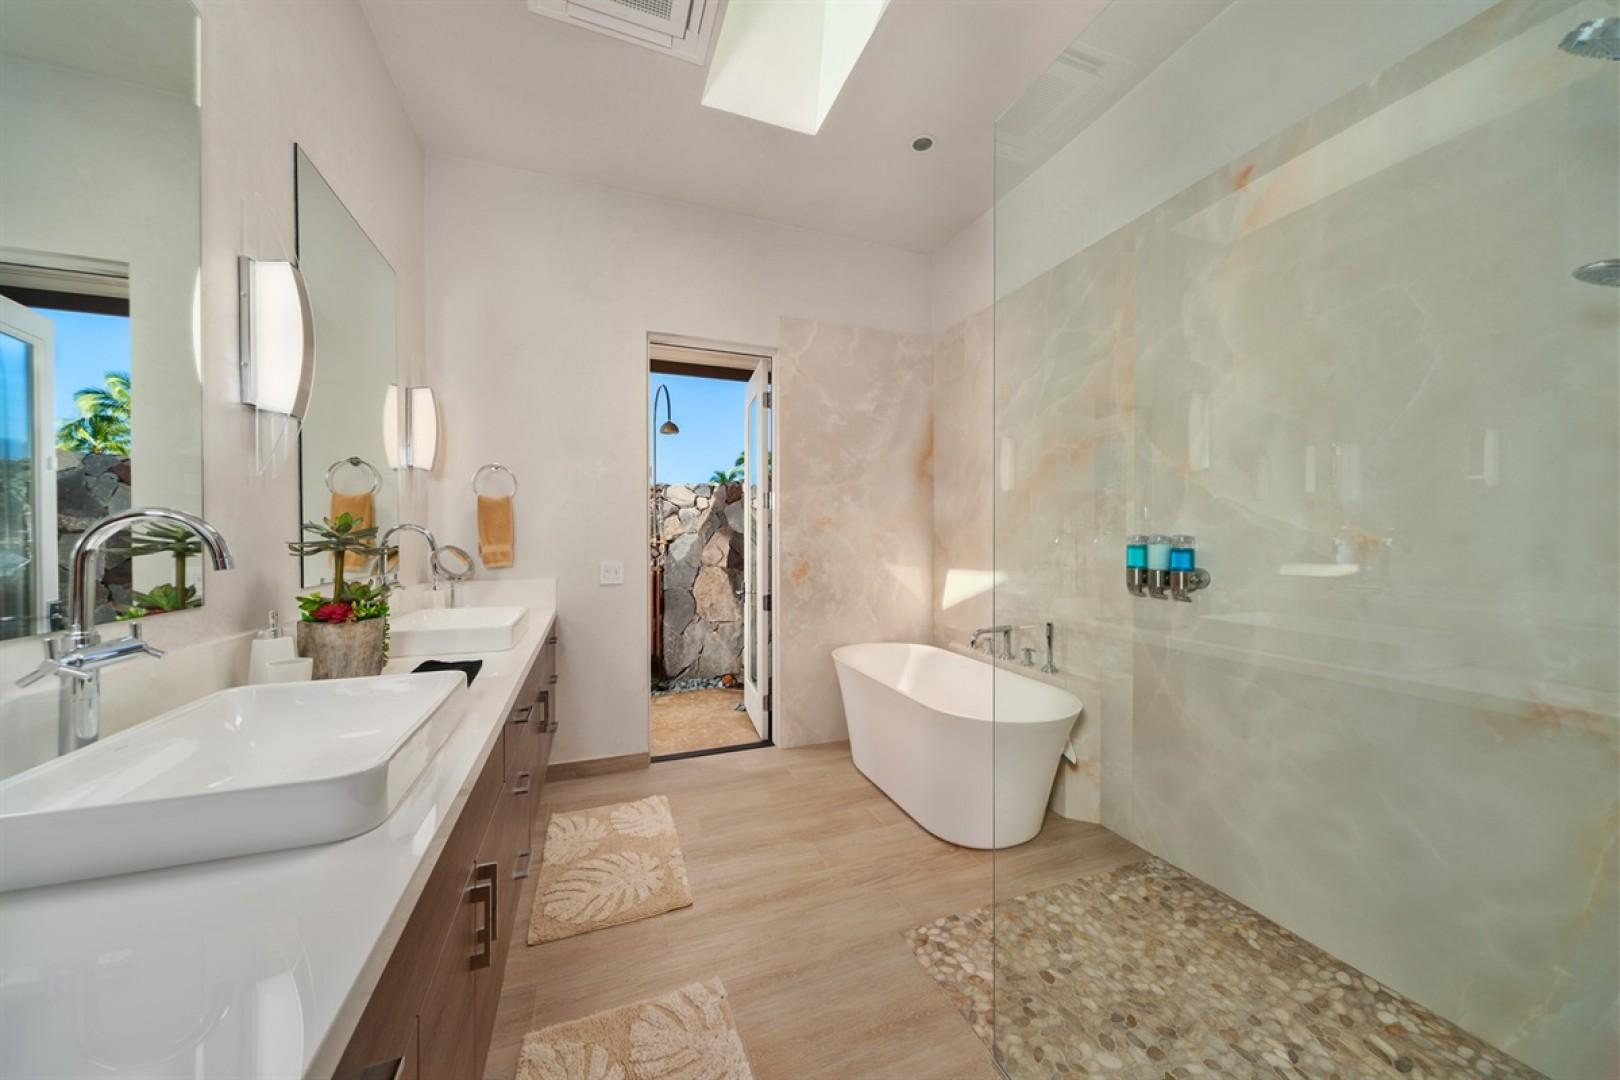 Master Suite 1 bath with elegant soaking tub, dual vanity, walk-in shower, and outdoor shower.